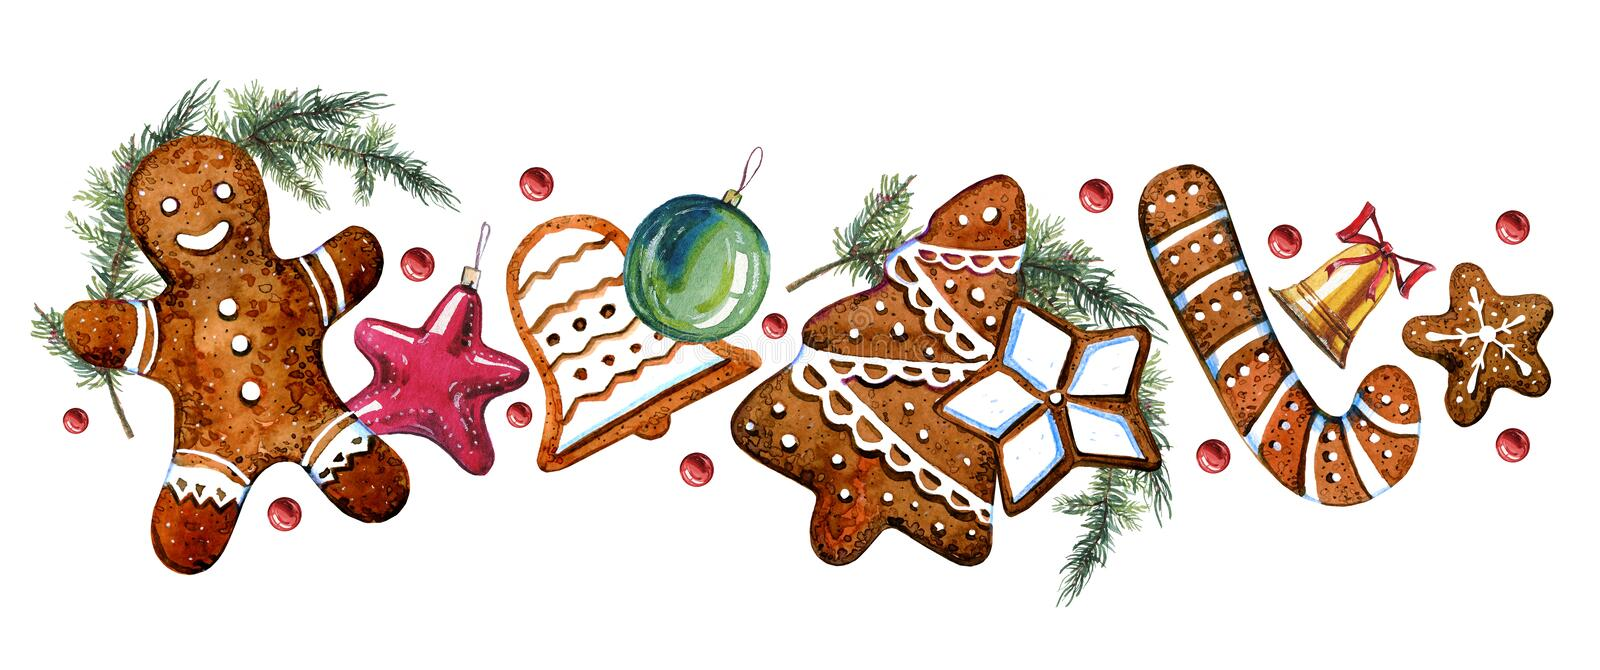 Gingerbread cookie figures with christmass tree decorations and fir branches. Hand drawn watercolor illustration. On white background royalty free illustration